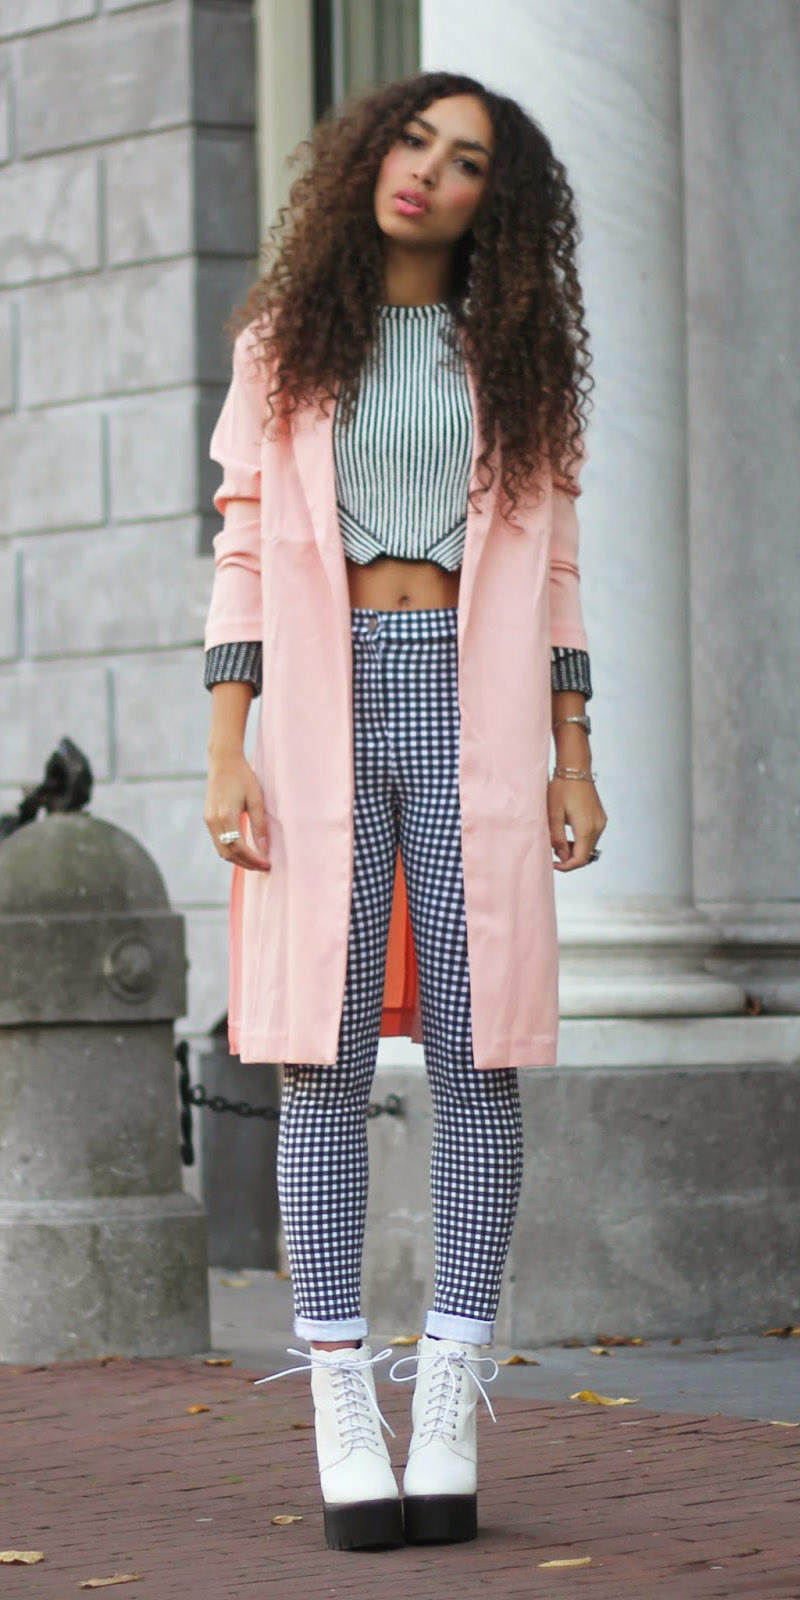 blue-navy-skinny-jeans-gingham-print-mix-white-shoe-booties-pink-light-jacket-coat-fall-winter-brun-lunch.jpg